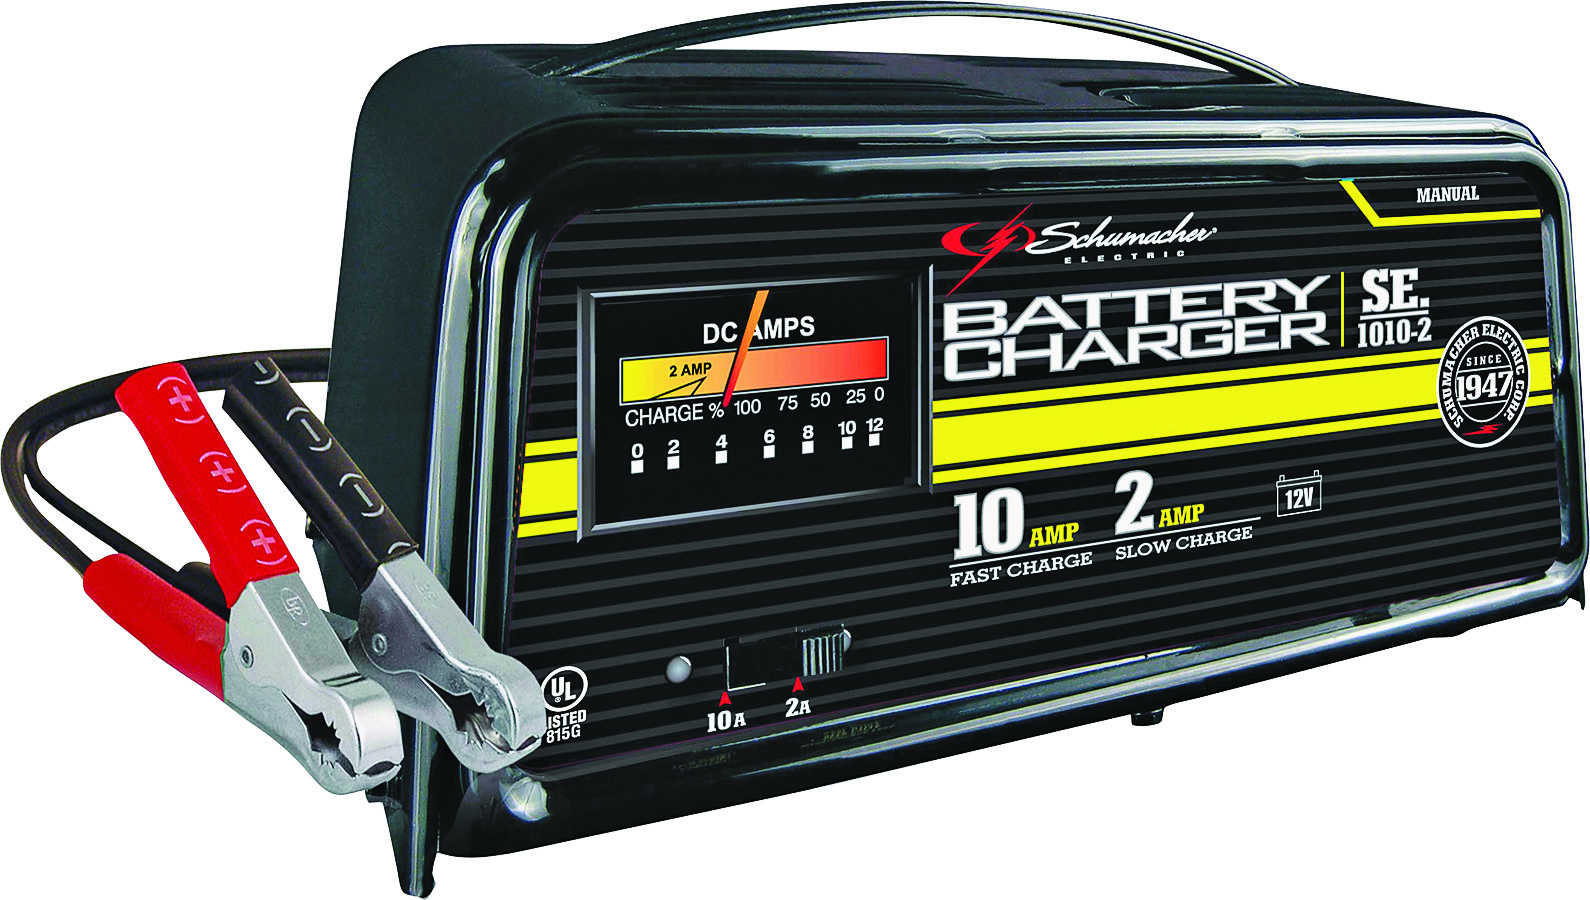 Battery Charger Auto Best Photos Simpleautomaticbatterychargercircuit Schuher Se 1010 2 12 Volt 10 S For Cars And